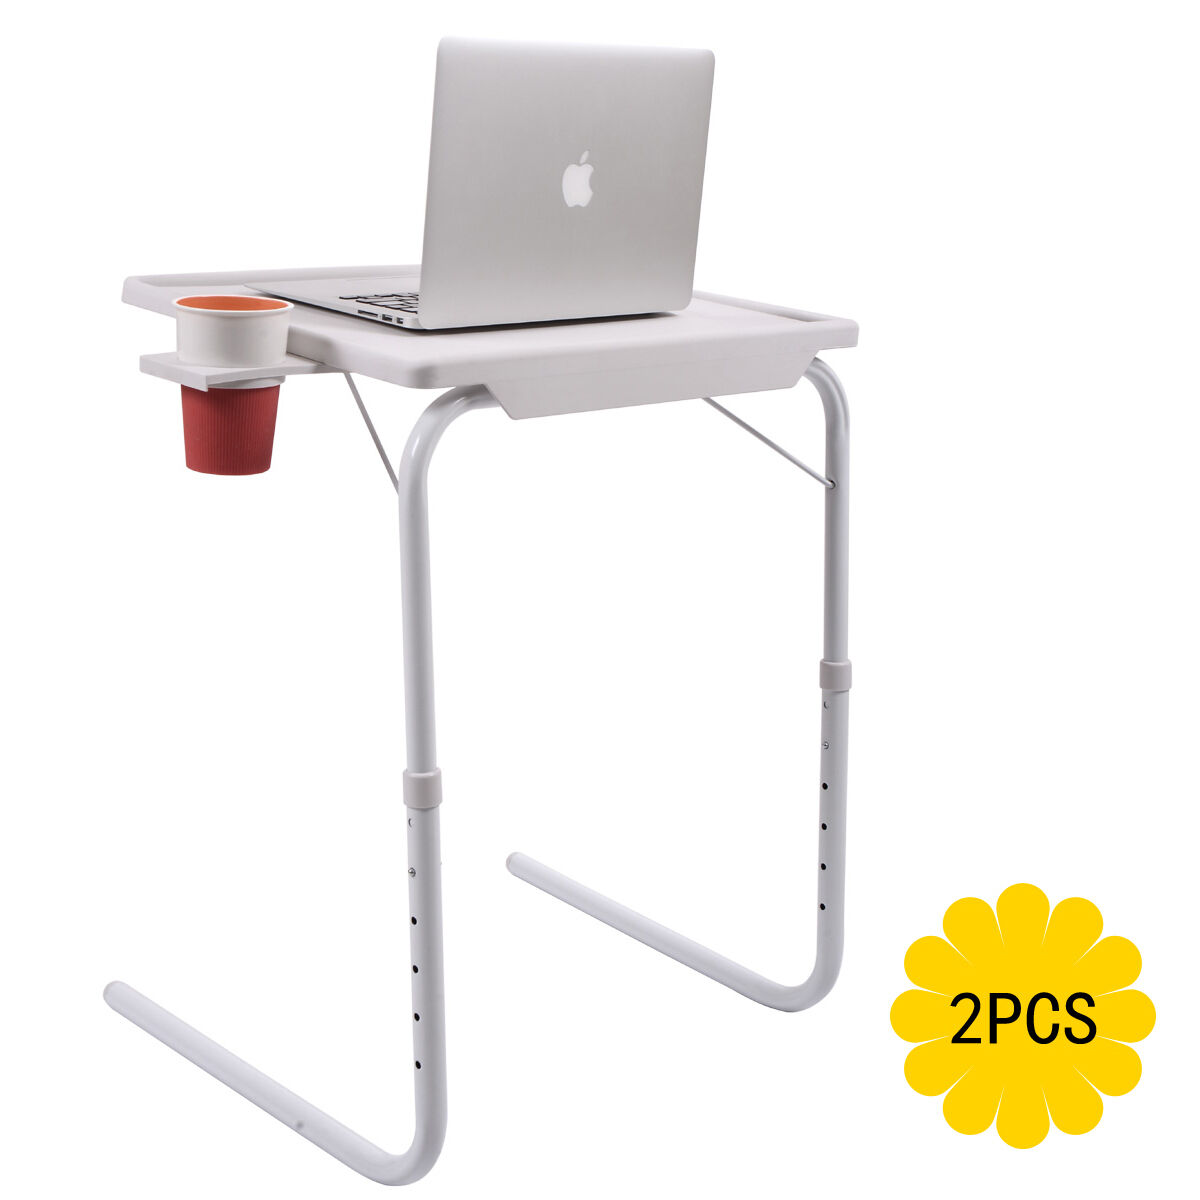 2 Smart Table Folding Adjustable Tray Foldable Desk W/Cup Ho